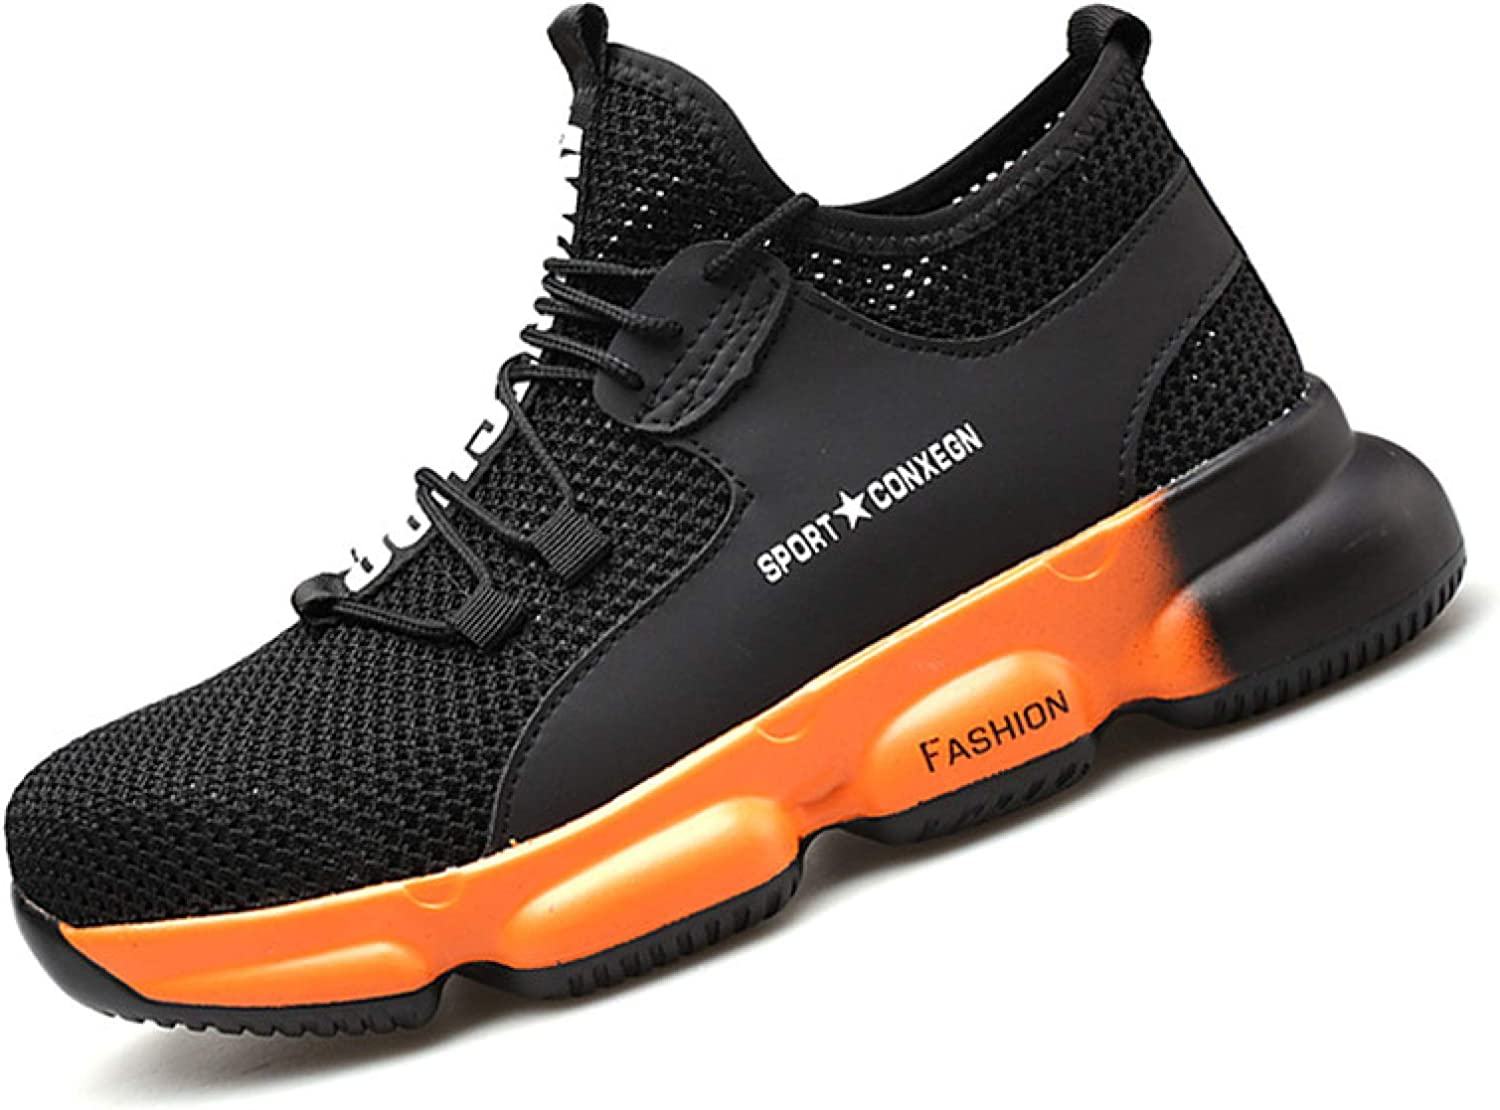 AGYE Safety Shoes for Men,Steel Toe Work Shoe Women,Puncture-Proof Light Breathable Industrial Construction Sneakers,Orange-40